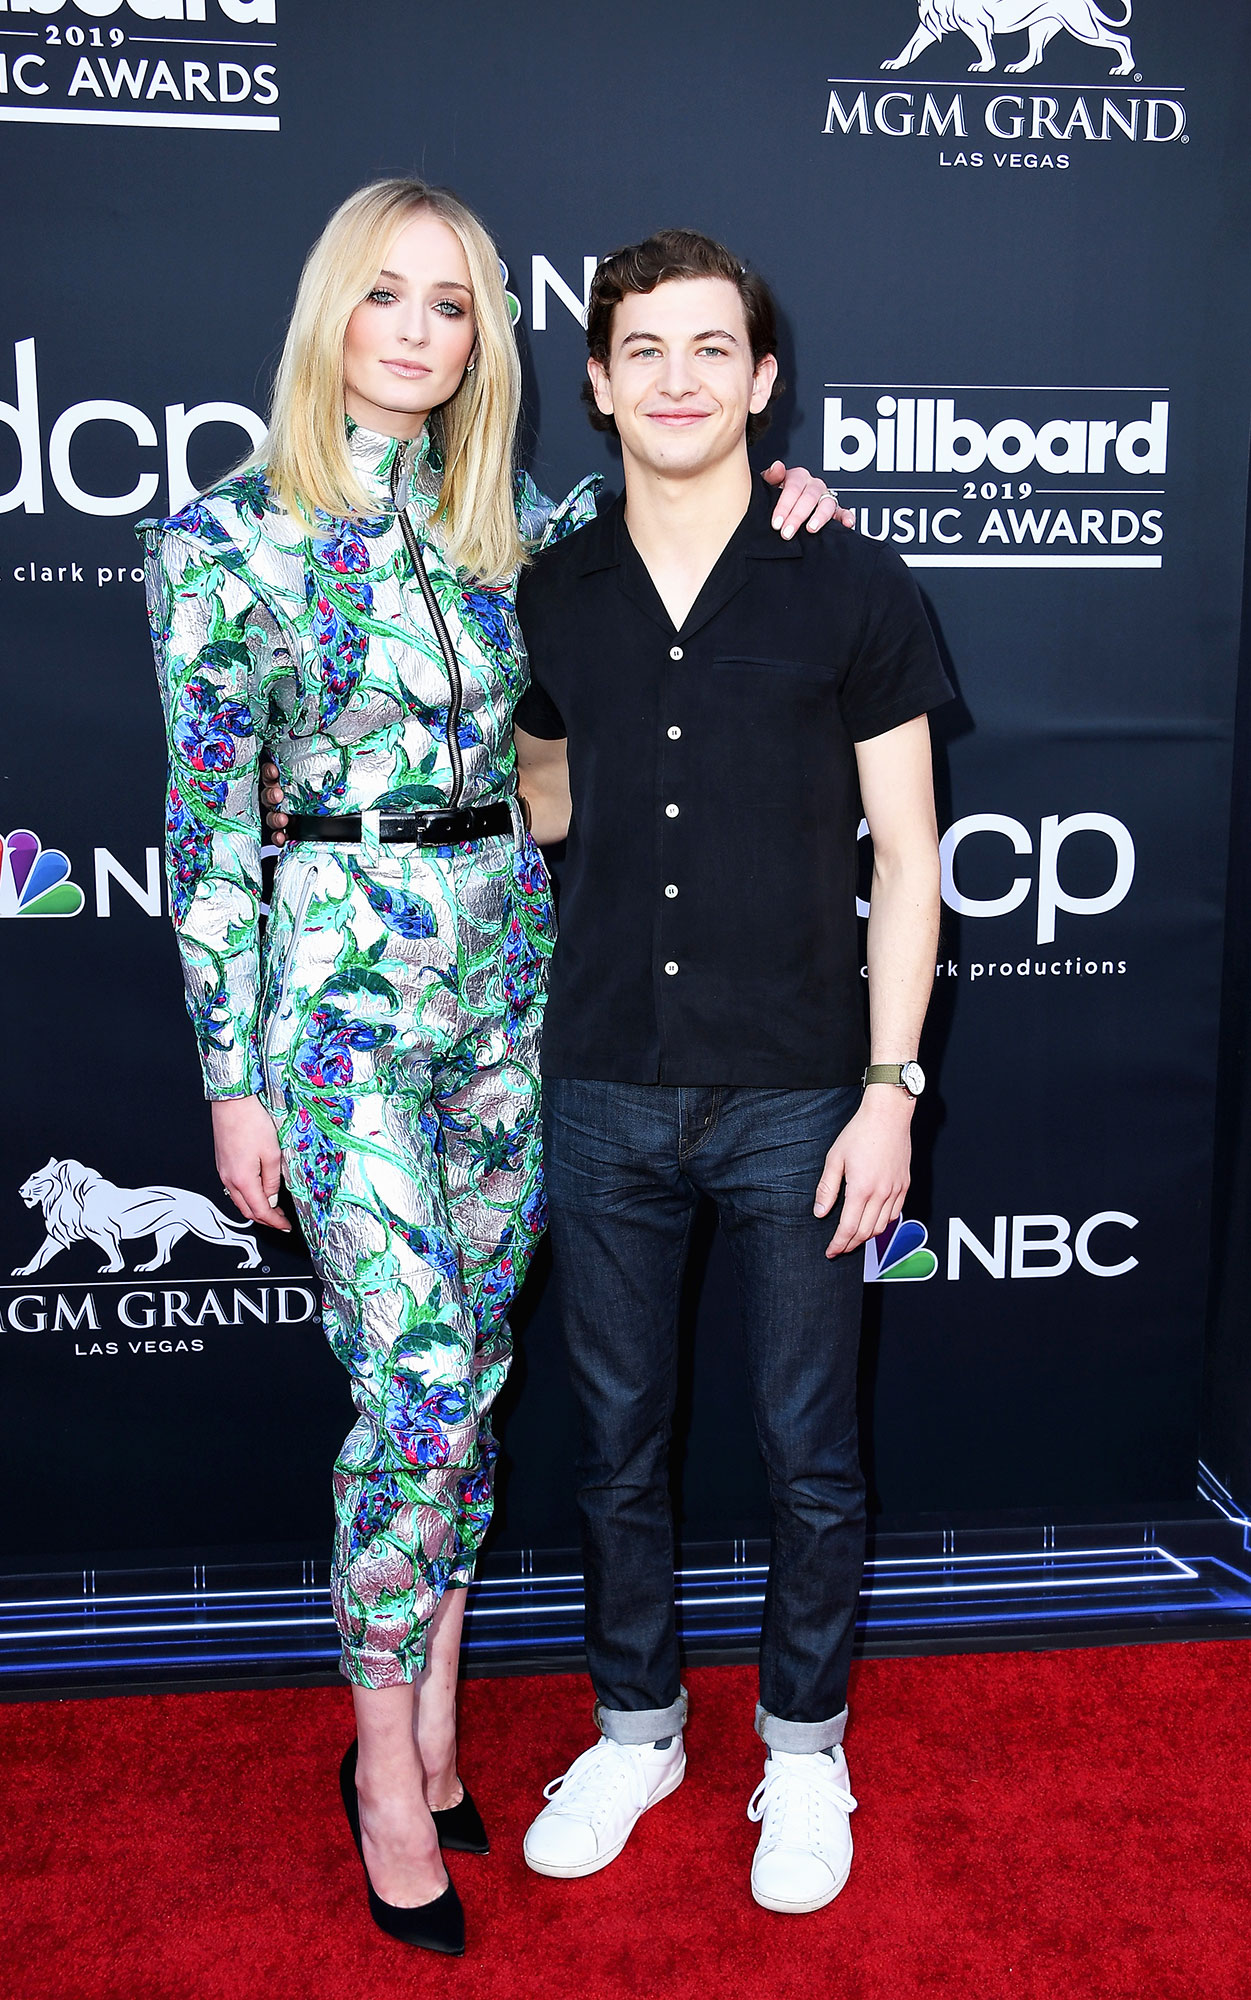 See the Hottest Couples at the BBMAs Sophie Turner and Tye Sheridan - While we would have loved to see the now-newlywed Turner pose with Joe Jonas, she looked fierce in a Louis Vuitton jumpsuit alongside her X-Men costar.